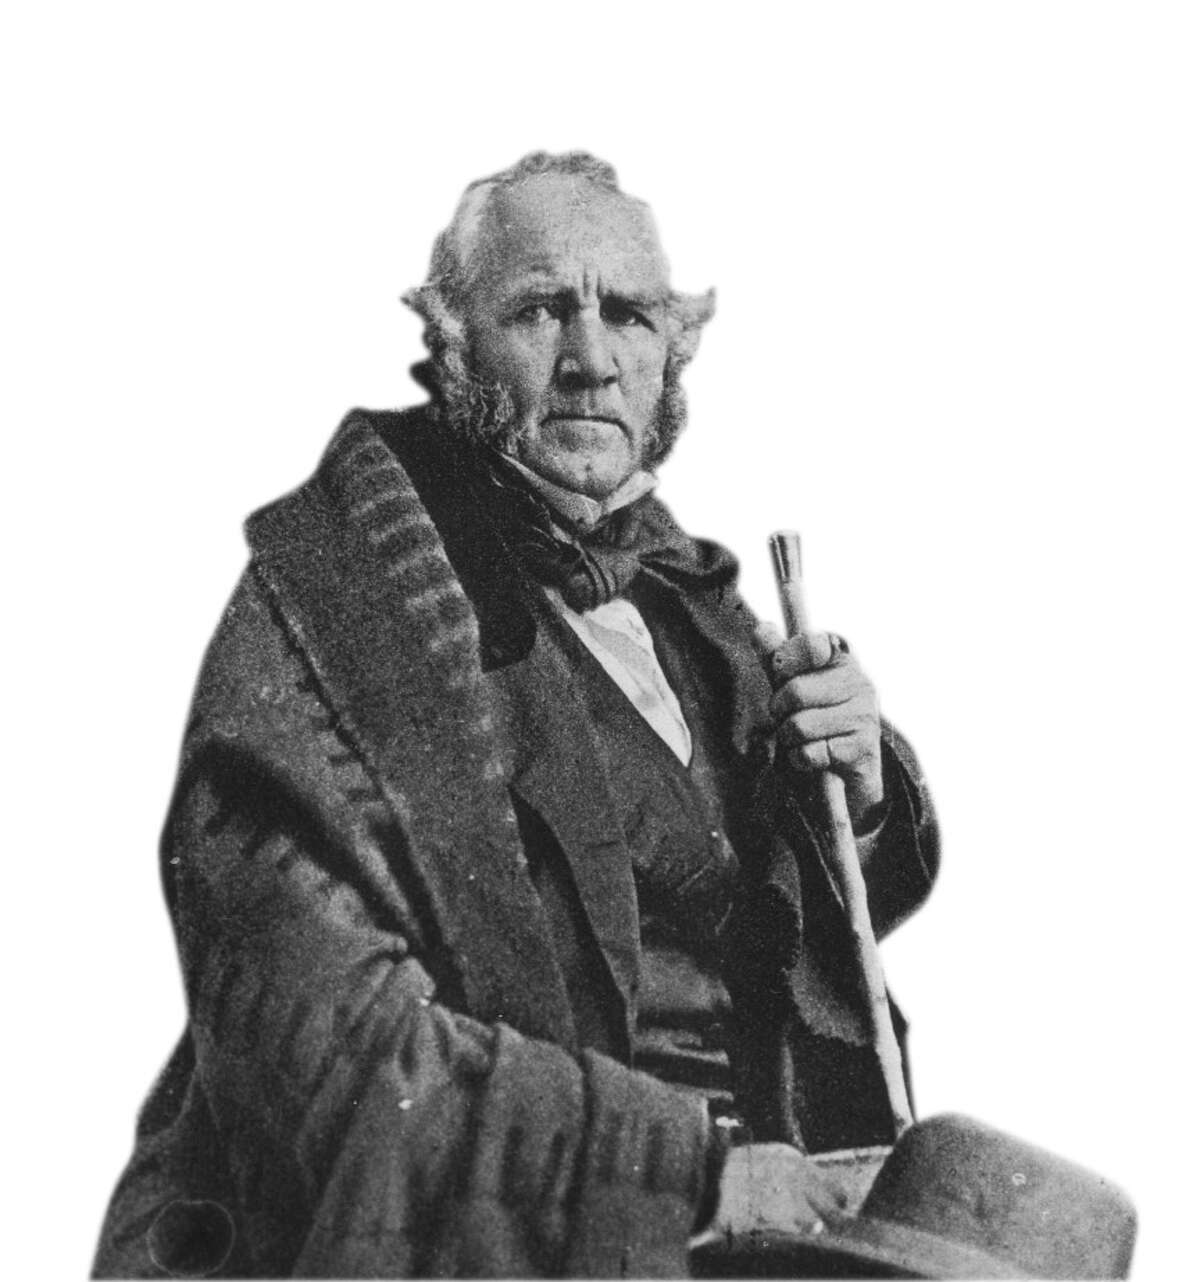 General Sam Houston 1857 - copy of Fredericks Gallery portrait. HOUCHRON CAPTION (04/03/1999): Houston. HOUCHRON CAPTION (03/07/2000): Sam Houston, hero of the Battle of San Jacinto, poses for a photograph in 1857. HOUCHRON CAPTION (04/14/2002): None.